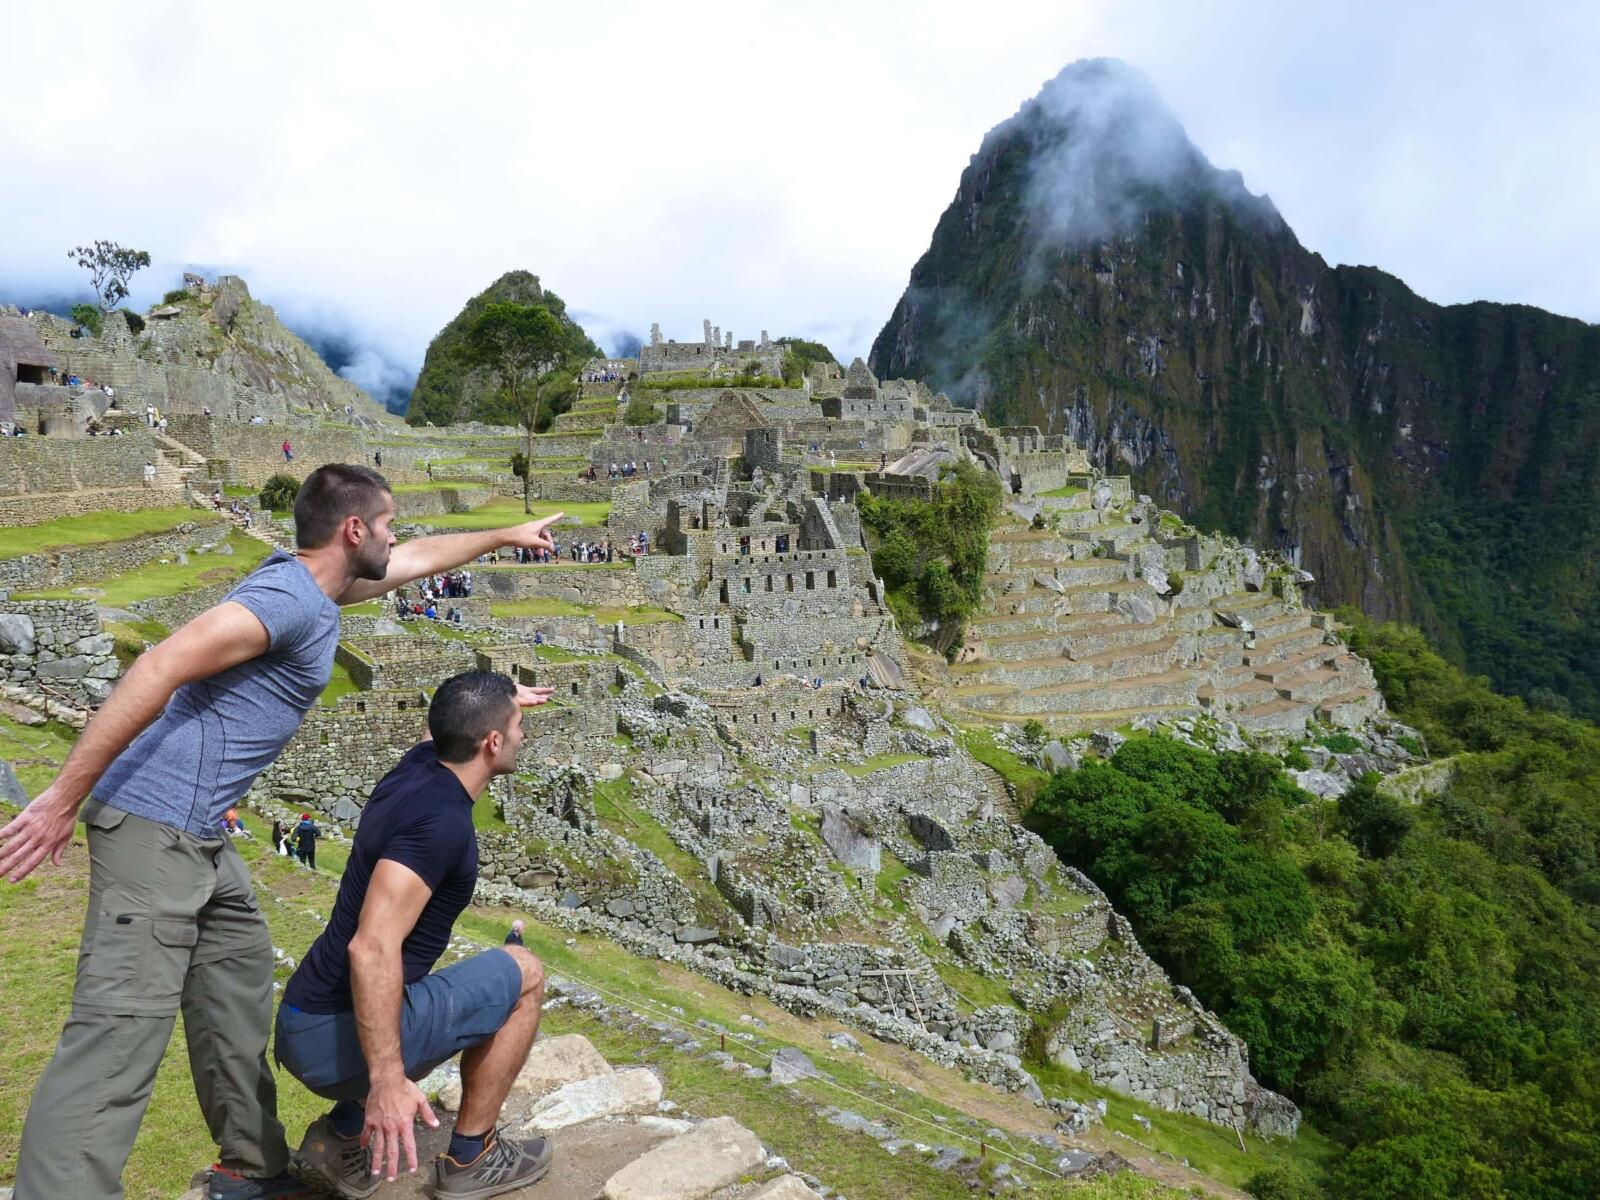 Machu Picchu is one of the highlights of South America.